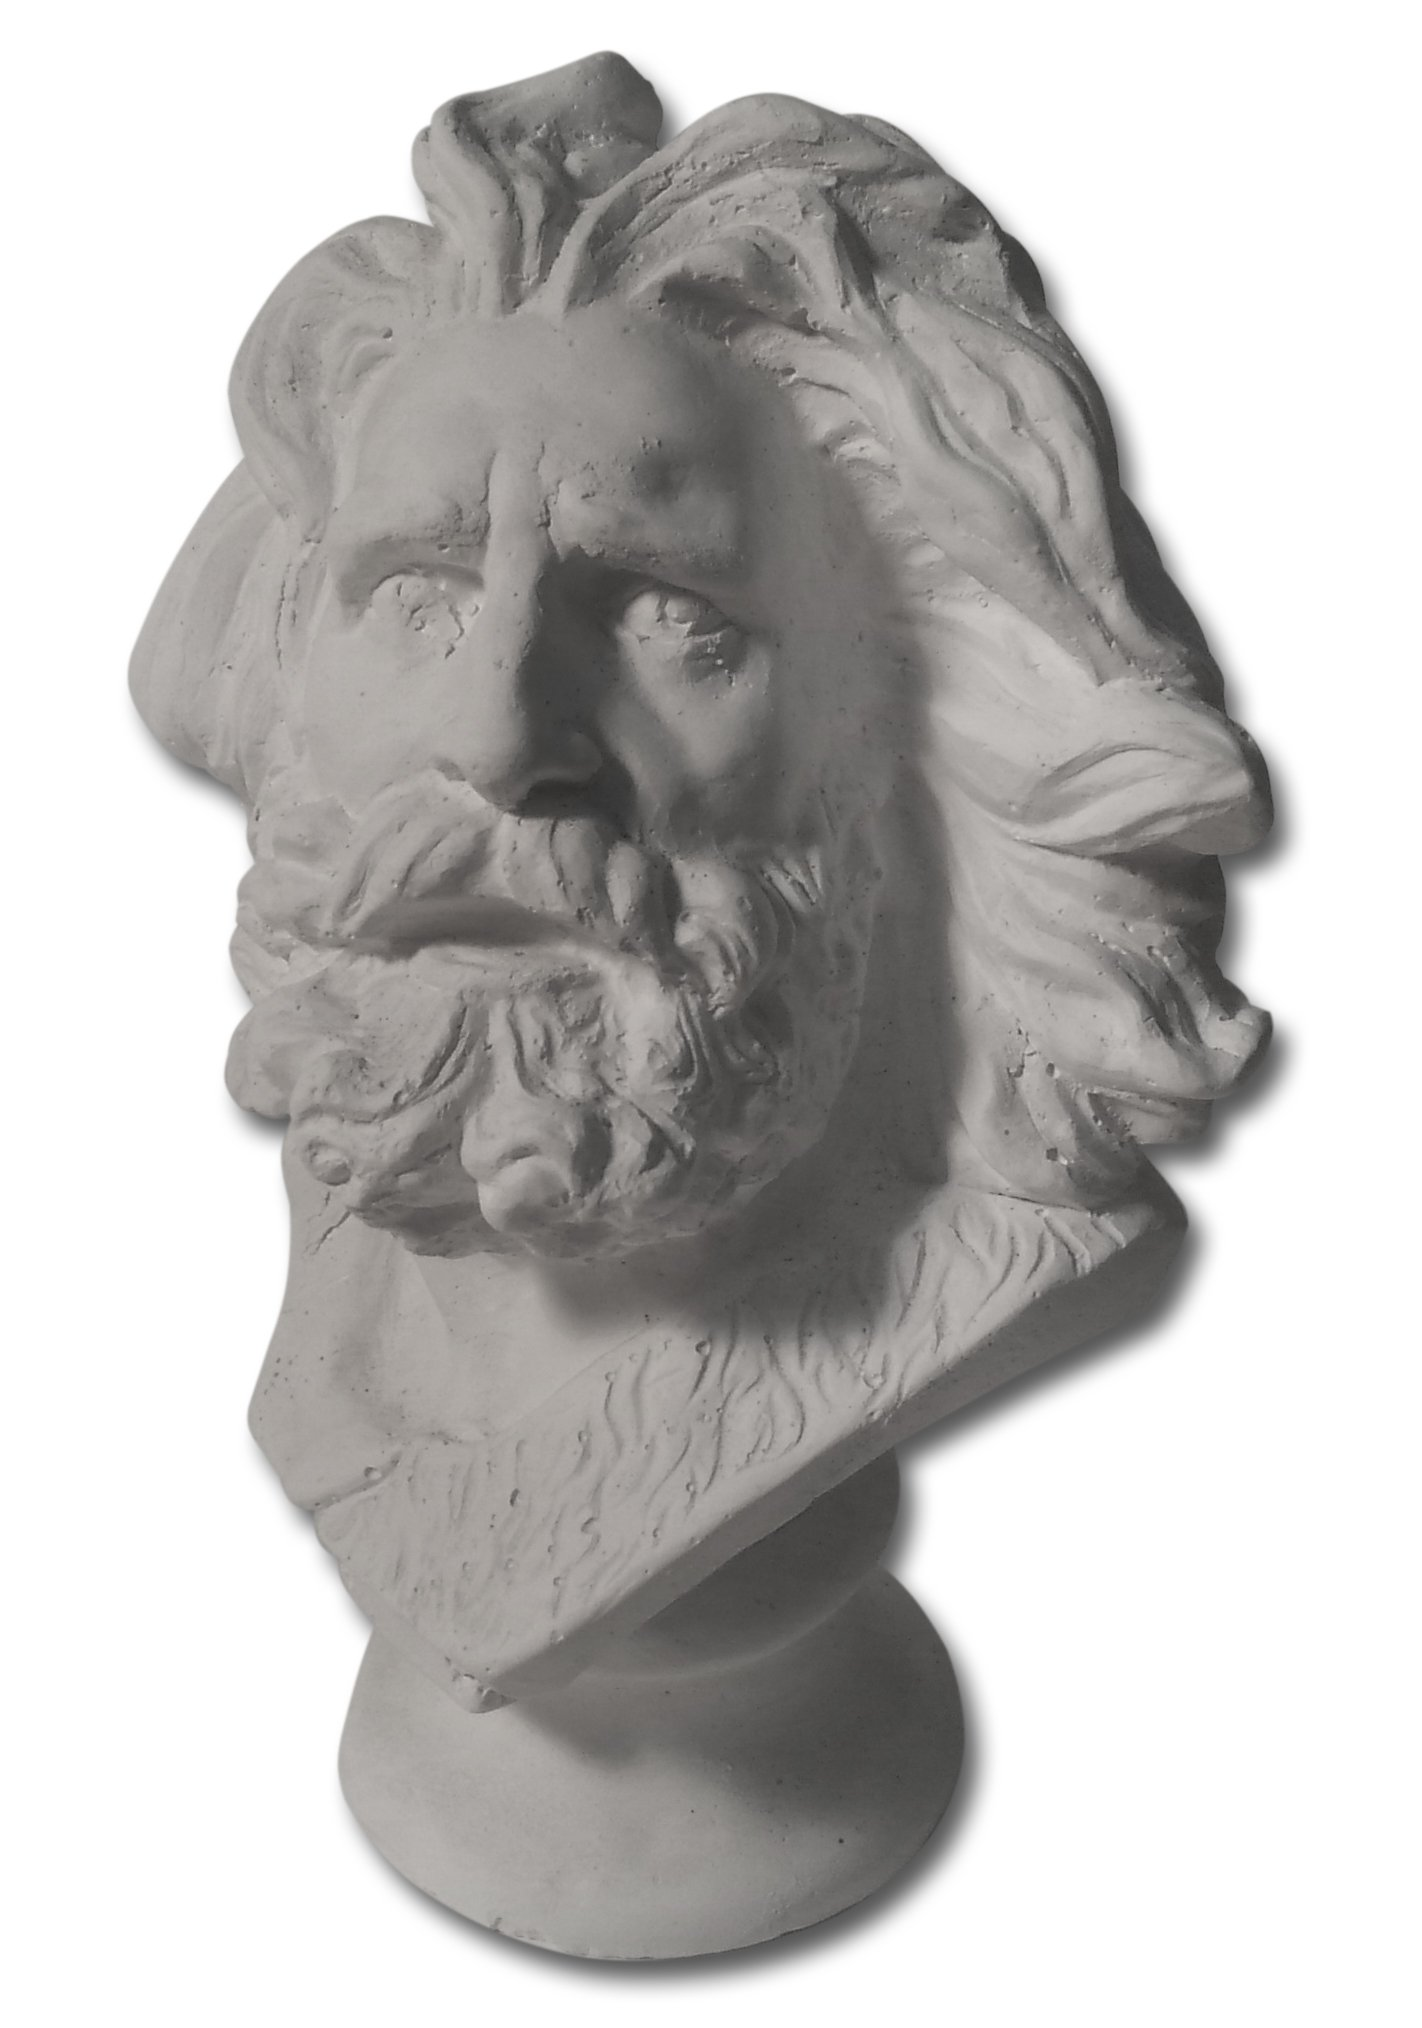 Torino Mini Marseilles and or Moses Head Plaster Cast Mannequin, Great for Artists, Artistic Piece, White, 4'' X 4.5'' X 7'' by Torino